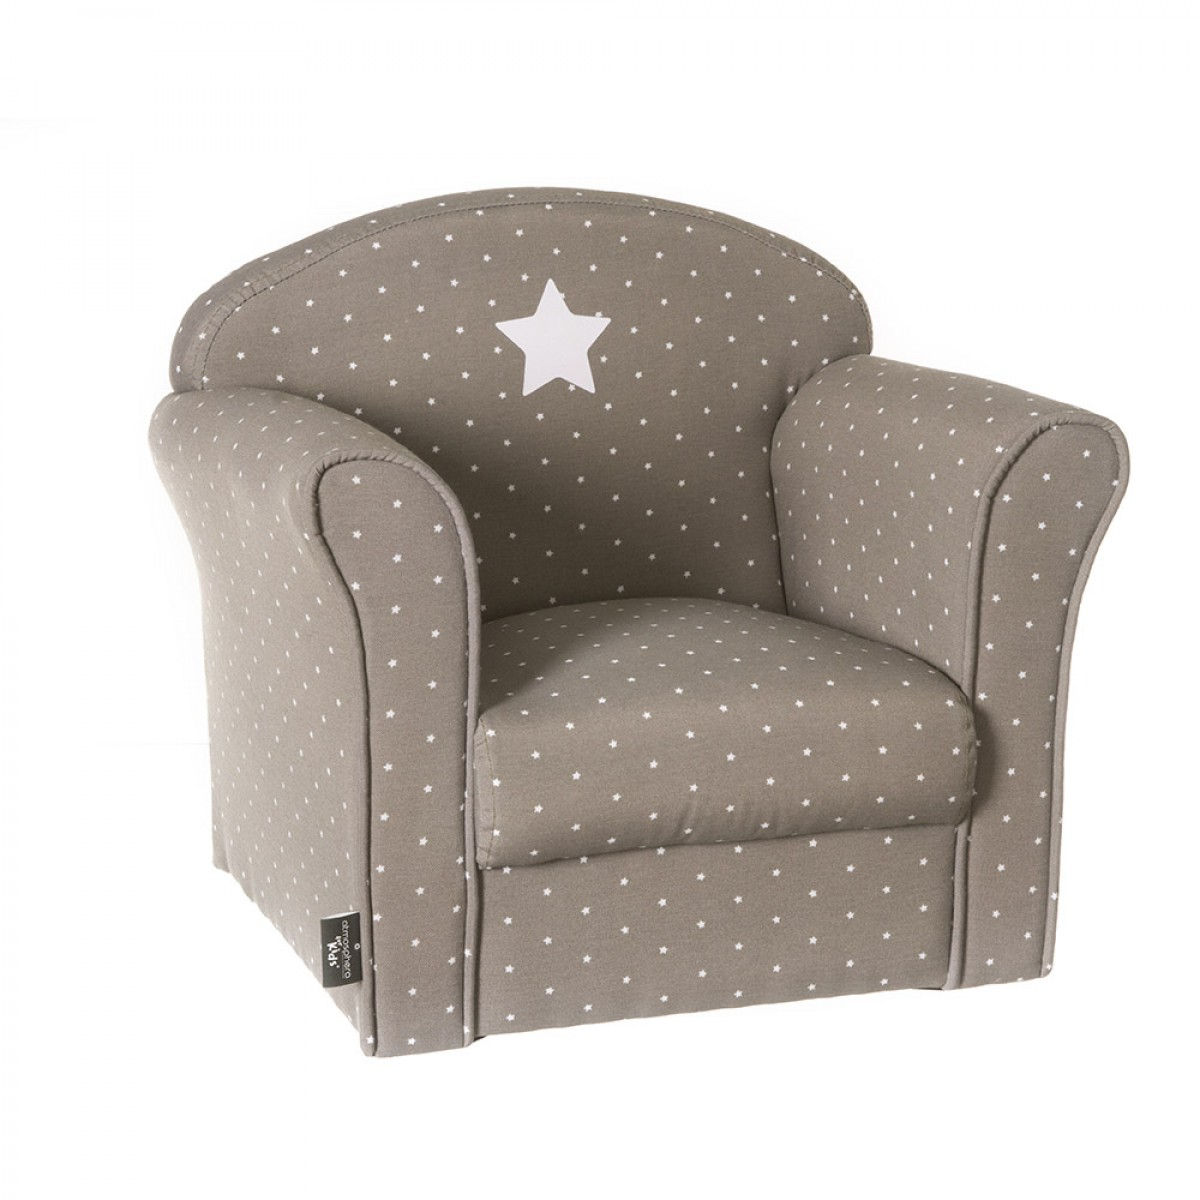 fauteuil taupe pour enfant les douces nuits de ma. Black Bedroom Furniture Sets. Home Design Ideas